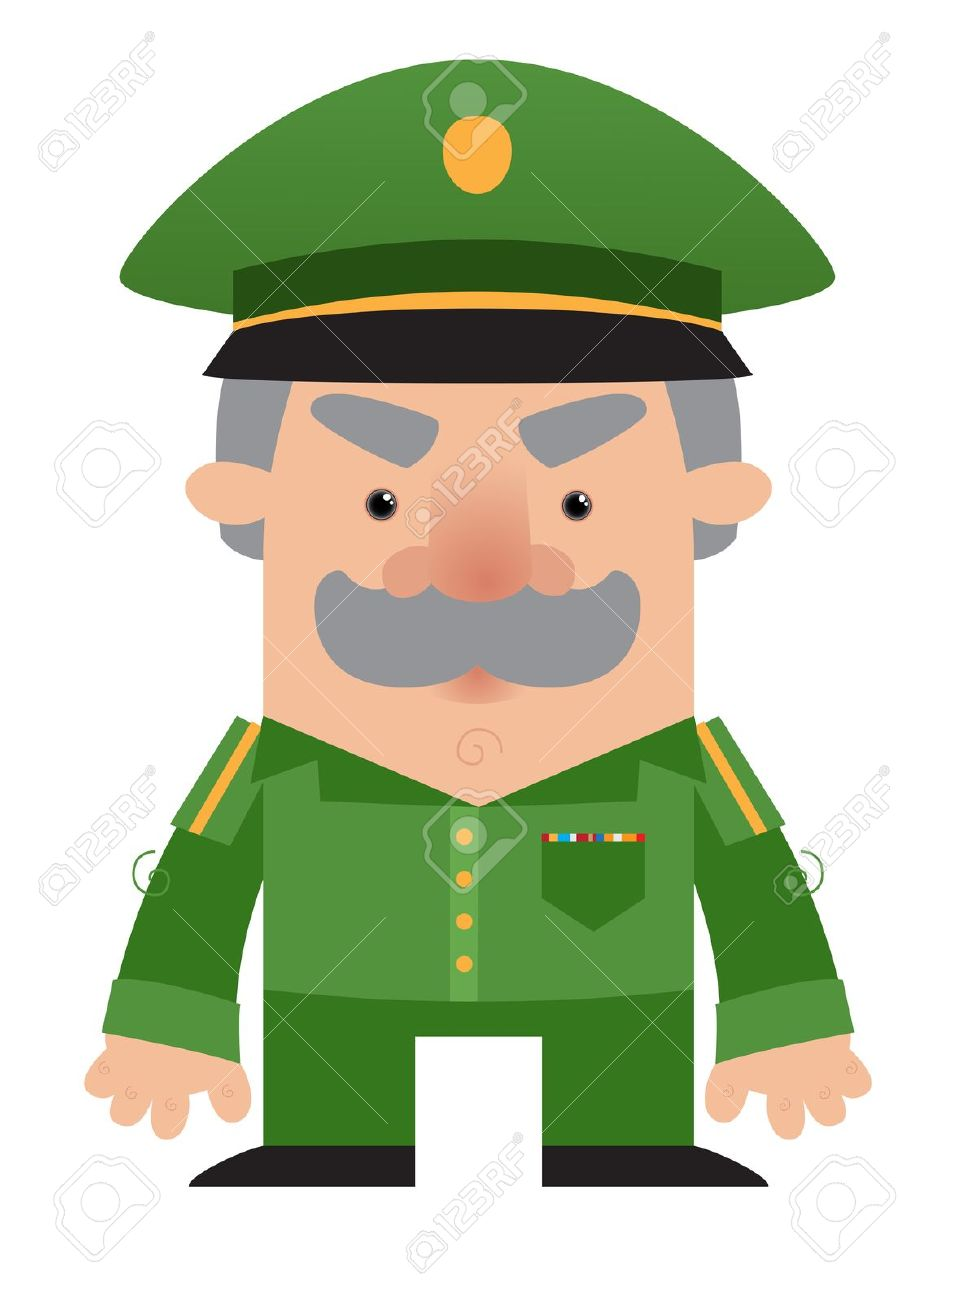 Cartoon Soldier Officer Royalty Free Cliparts, Vectors, And Stock.